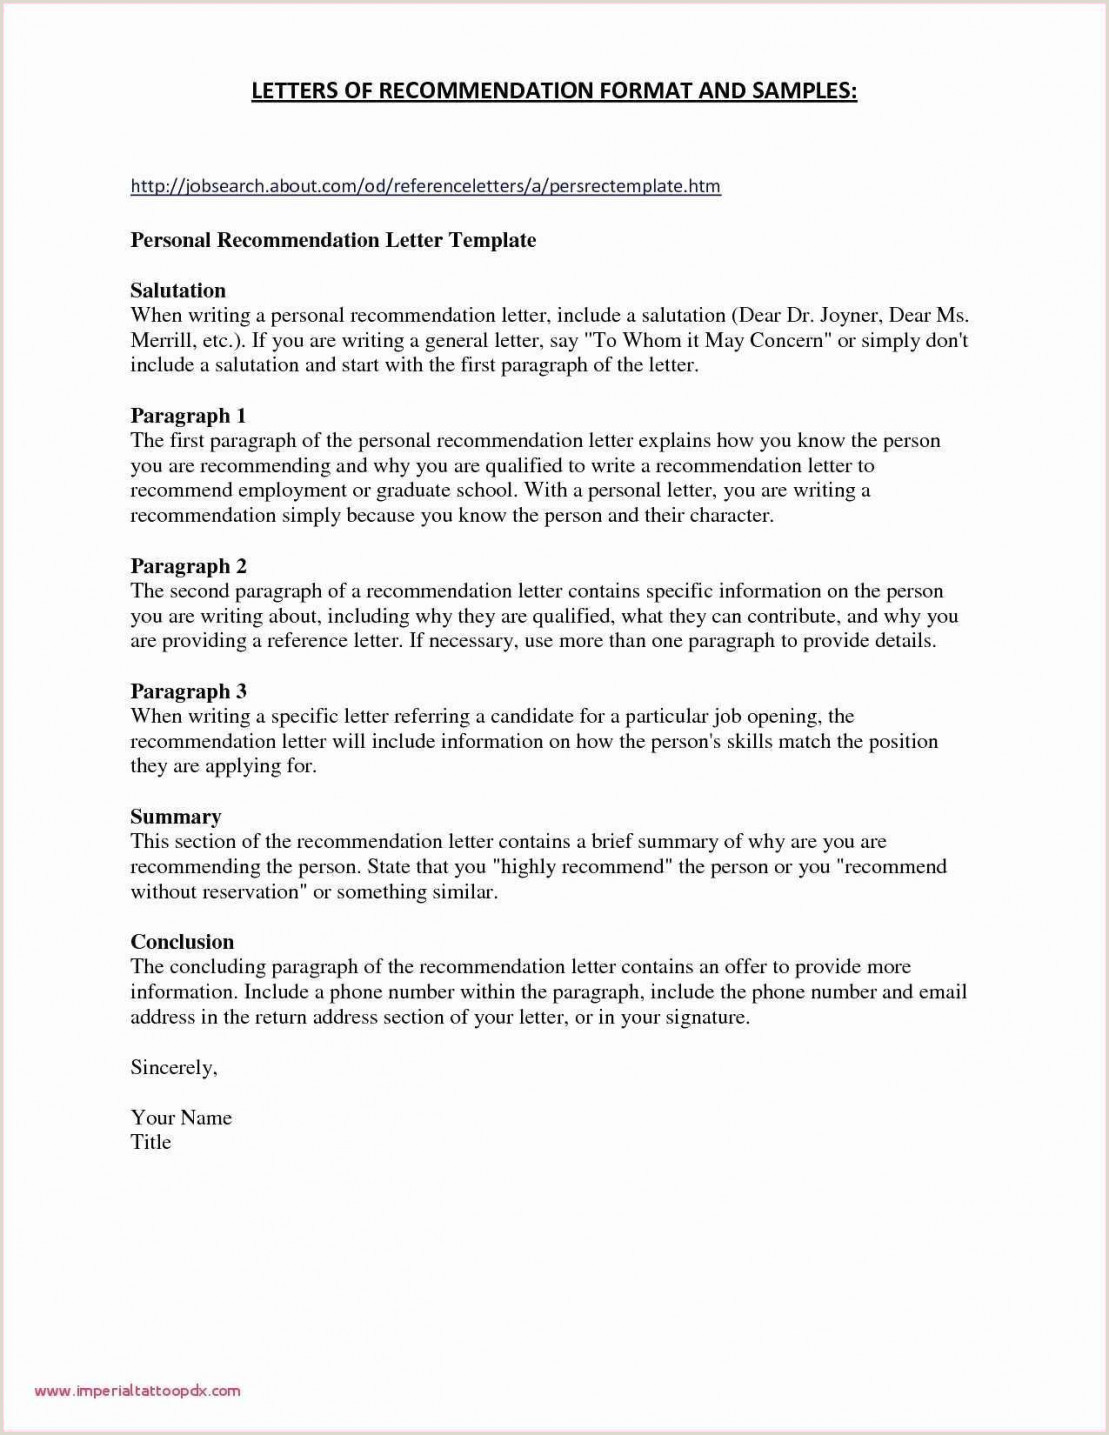 Professional Cv Template Doc Free Download Chronologicalsume Template General the Site 872x1024